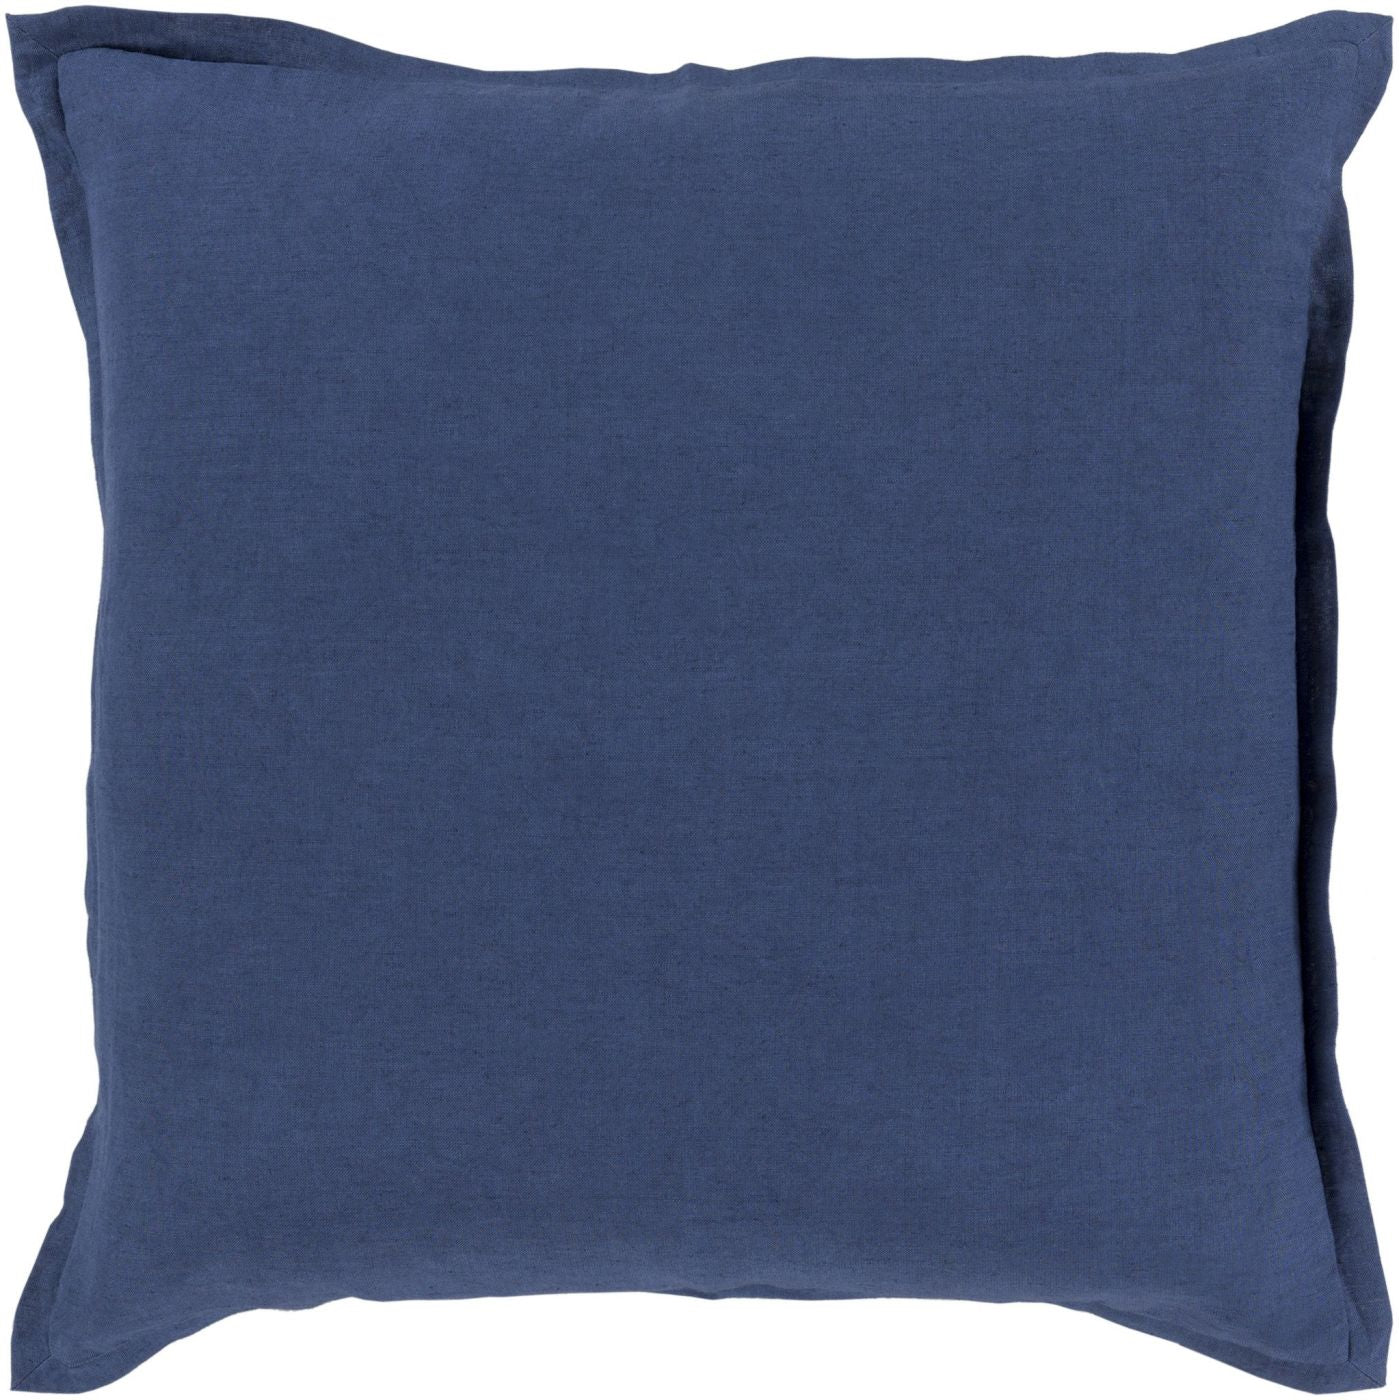 Throw Pillow Warehouse : Surya Orianna Throw Pillow Blue OR011-1818D. Only $43.80 at Contemporary Furniture Warehouse.